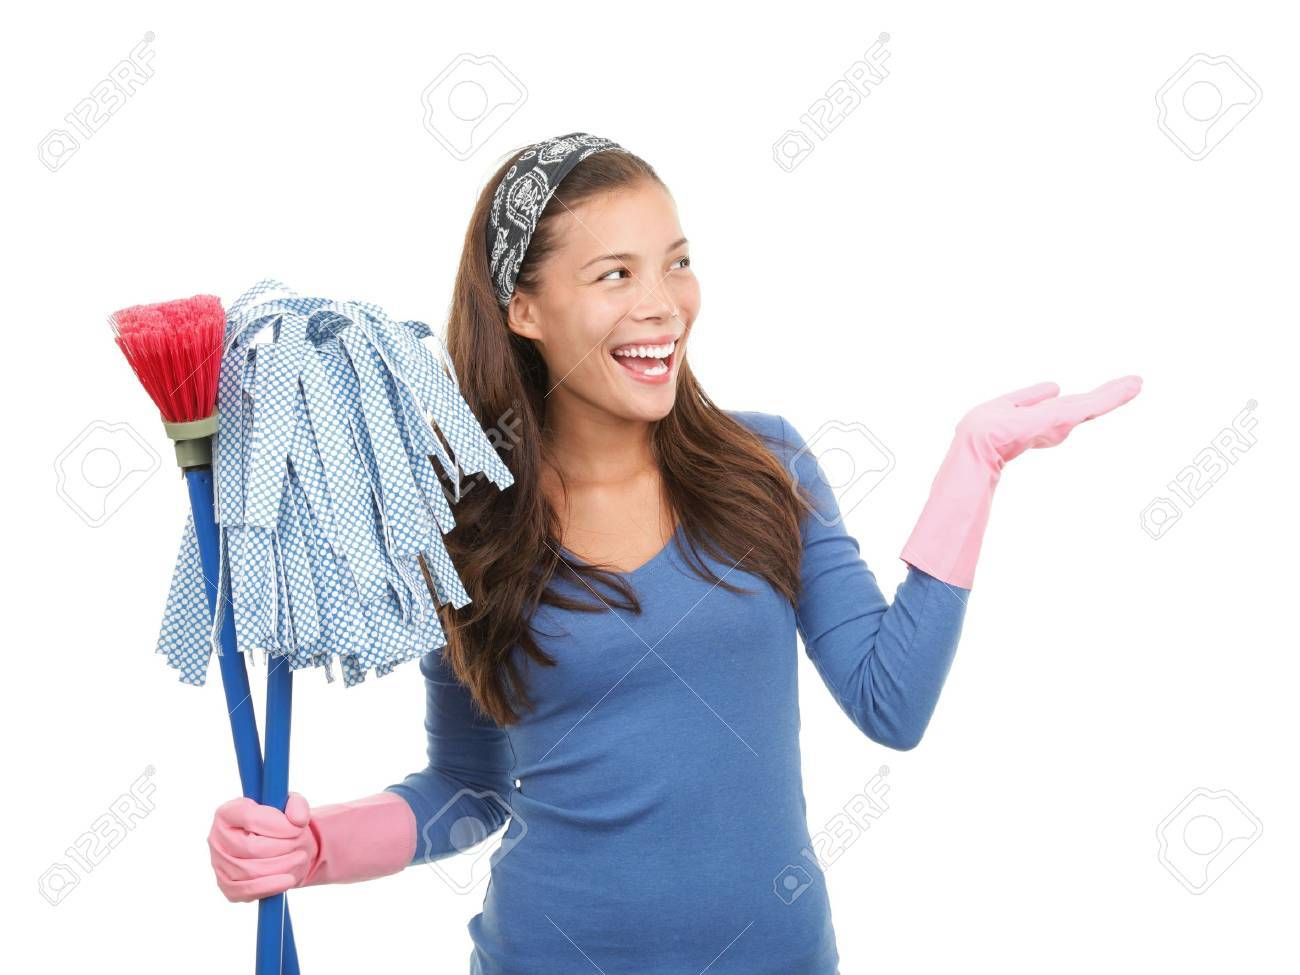 Young asian woman cleaning and presenting your product or message at the side. Isolated on white background. Stock Photo - 6190819